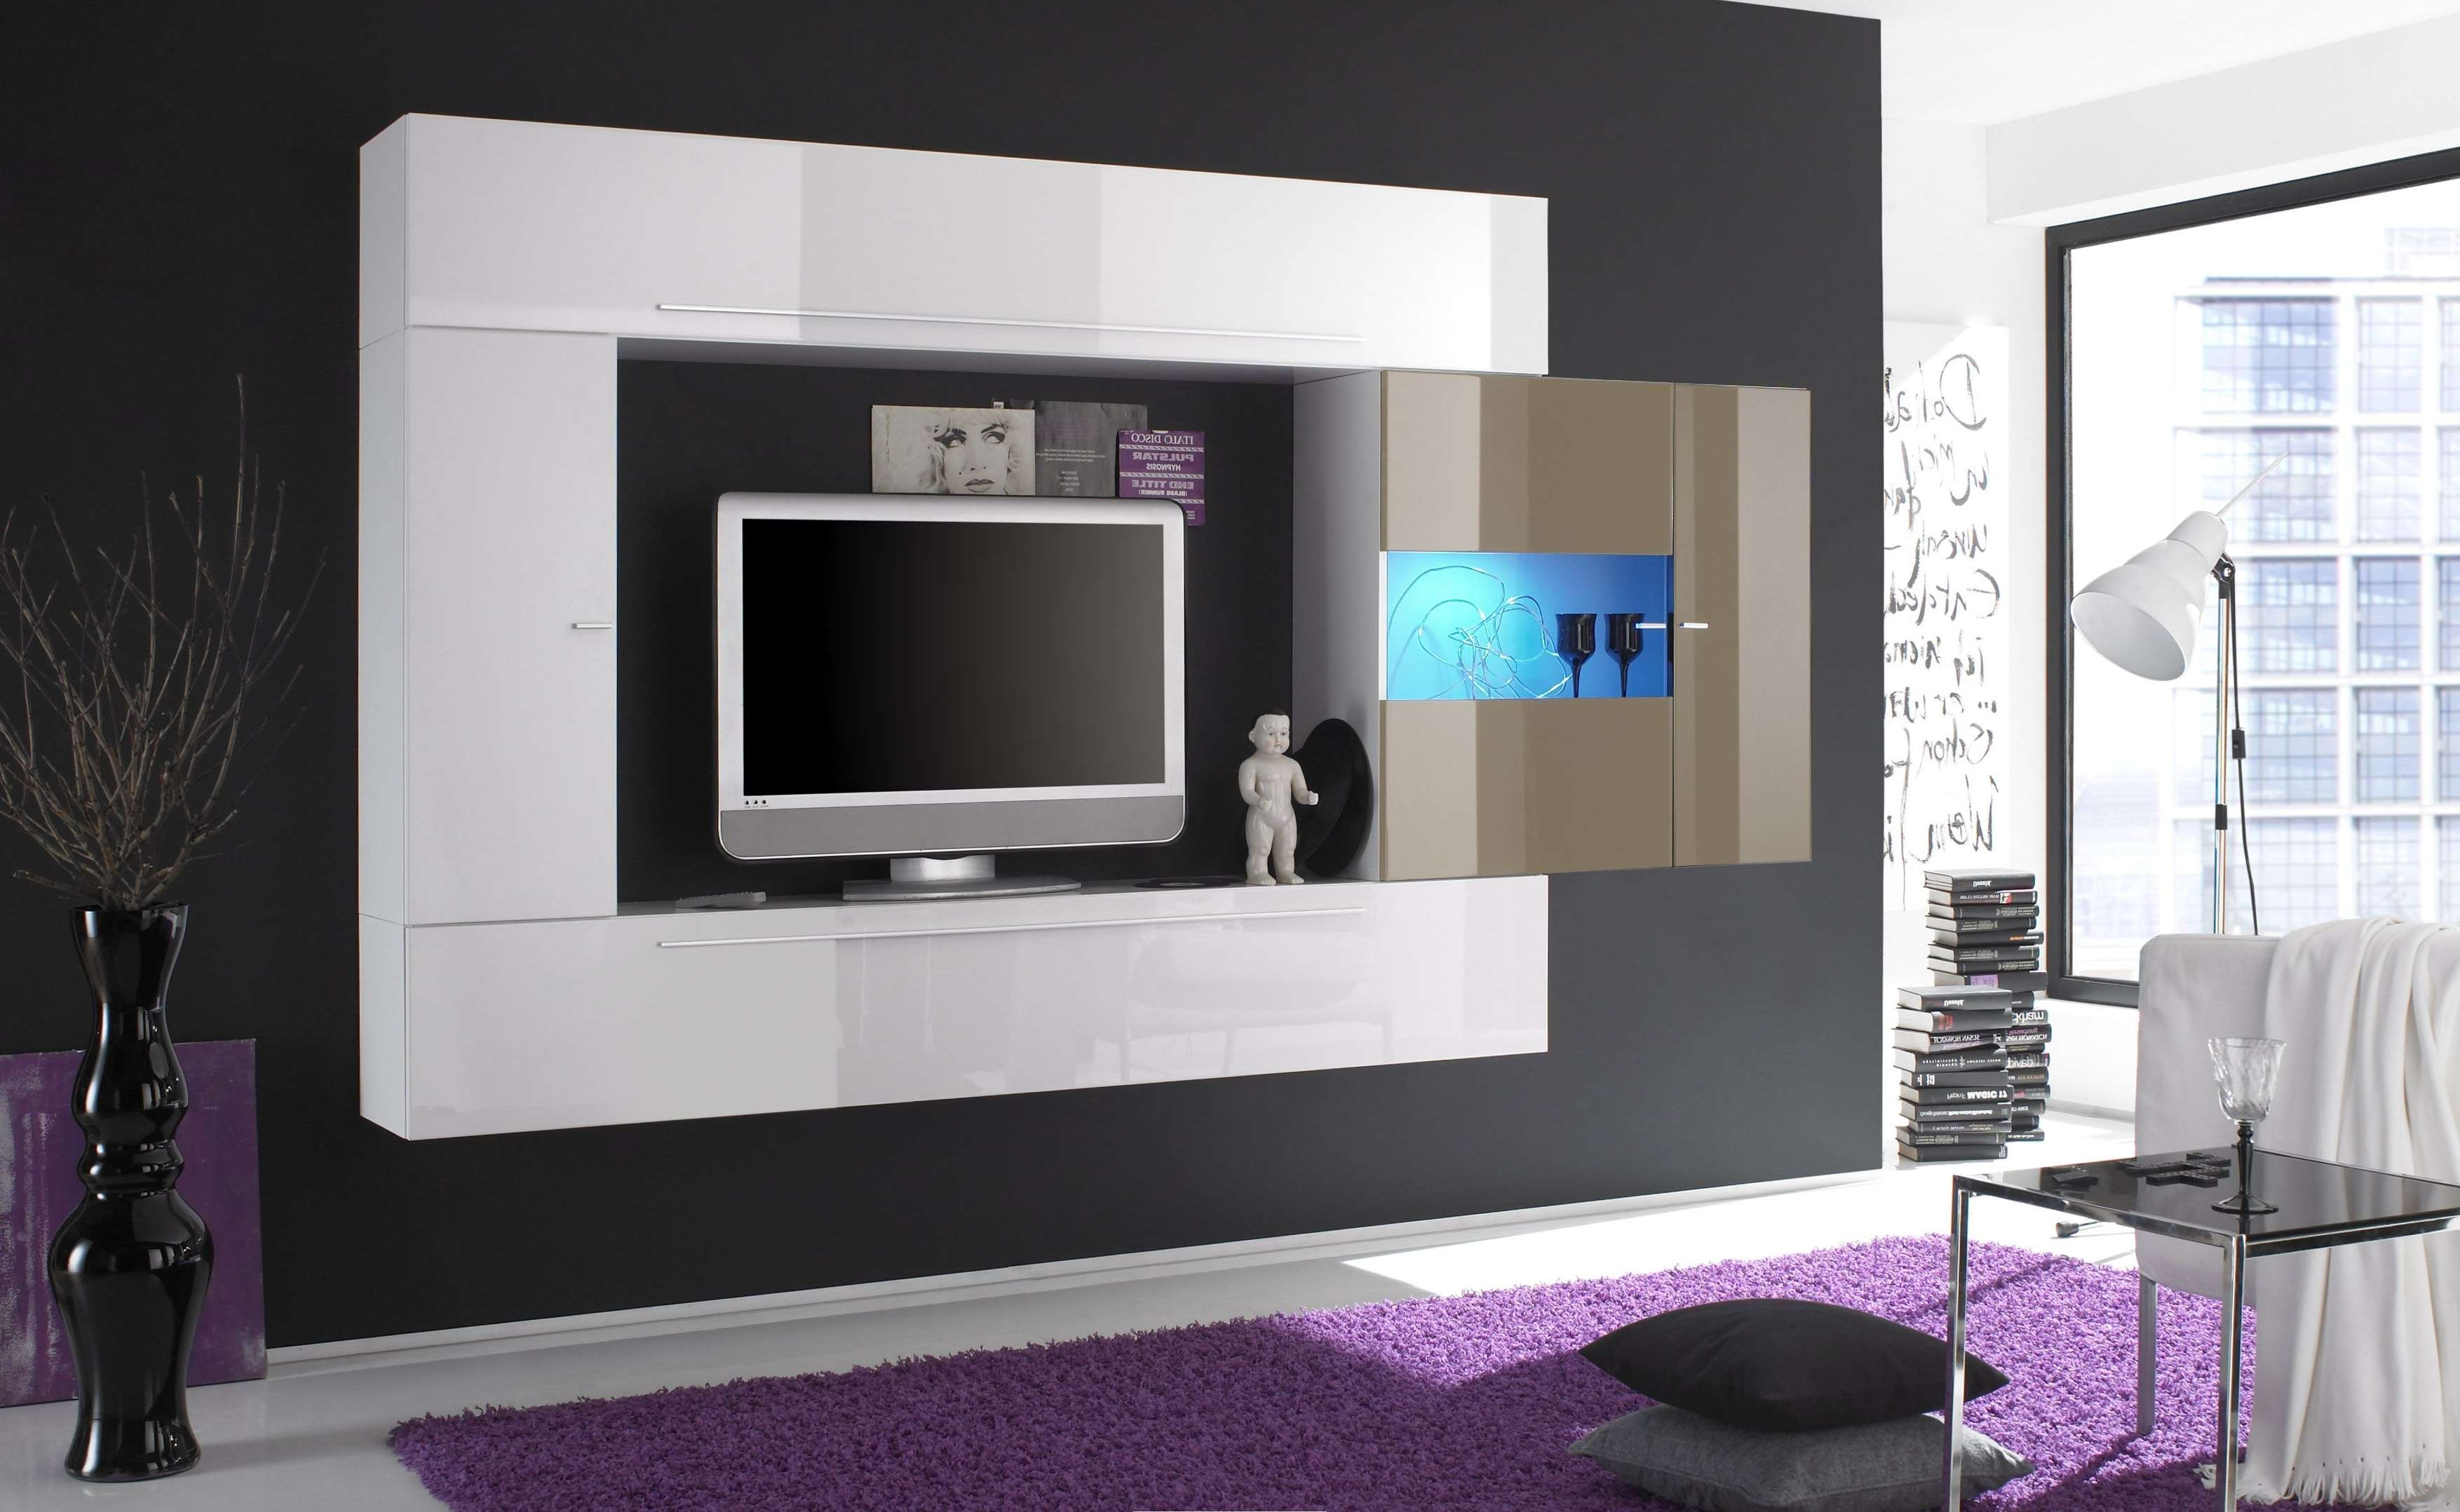 Home Decor : Wall Mounted Flat Screen Tv Cabinet Grey Bathroom Inside Wall Mounted Tv Cabinets For Flat Screens (View 7 of 20)